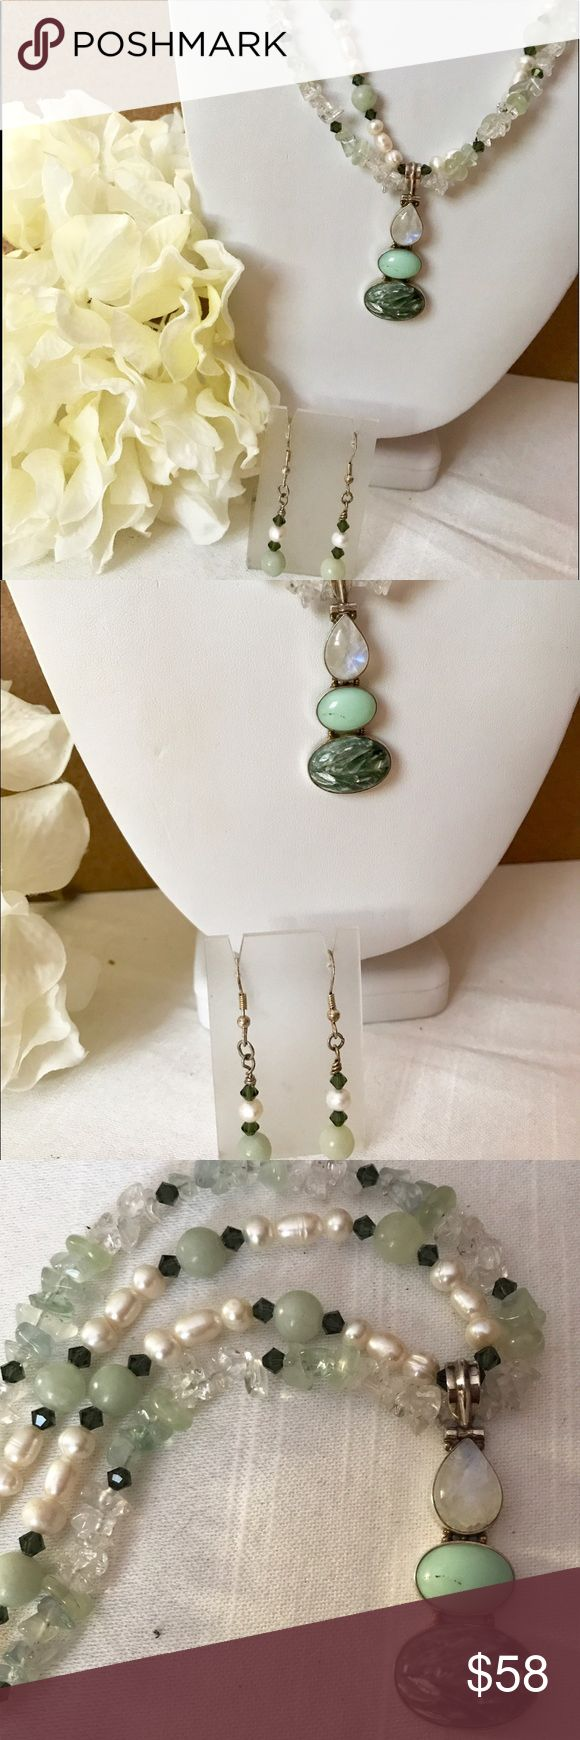 "Double strand pearl pendant set Double strand necklace and earring set. White freshwater pearls, emerald Swarovski crystals, jade beads, clear and jade quartz chips, sterling silver closure, matching earrings with ss hook, necklace is 18"" with 2"" pendant drop, earrings are 2"" long, the pendant is sterling silver with moonstone, jade and I can't remember the other stone name, price for set Jewelry"